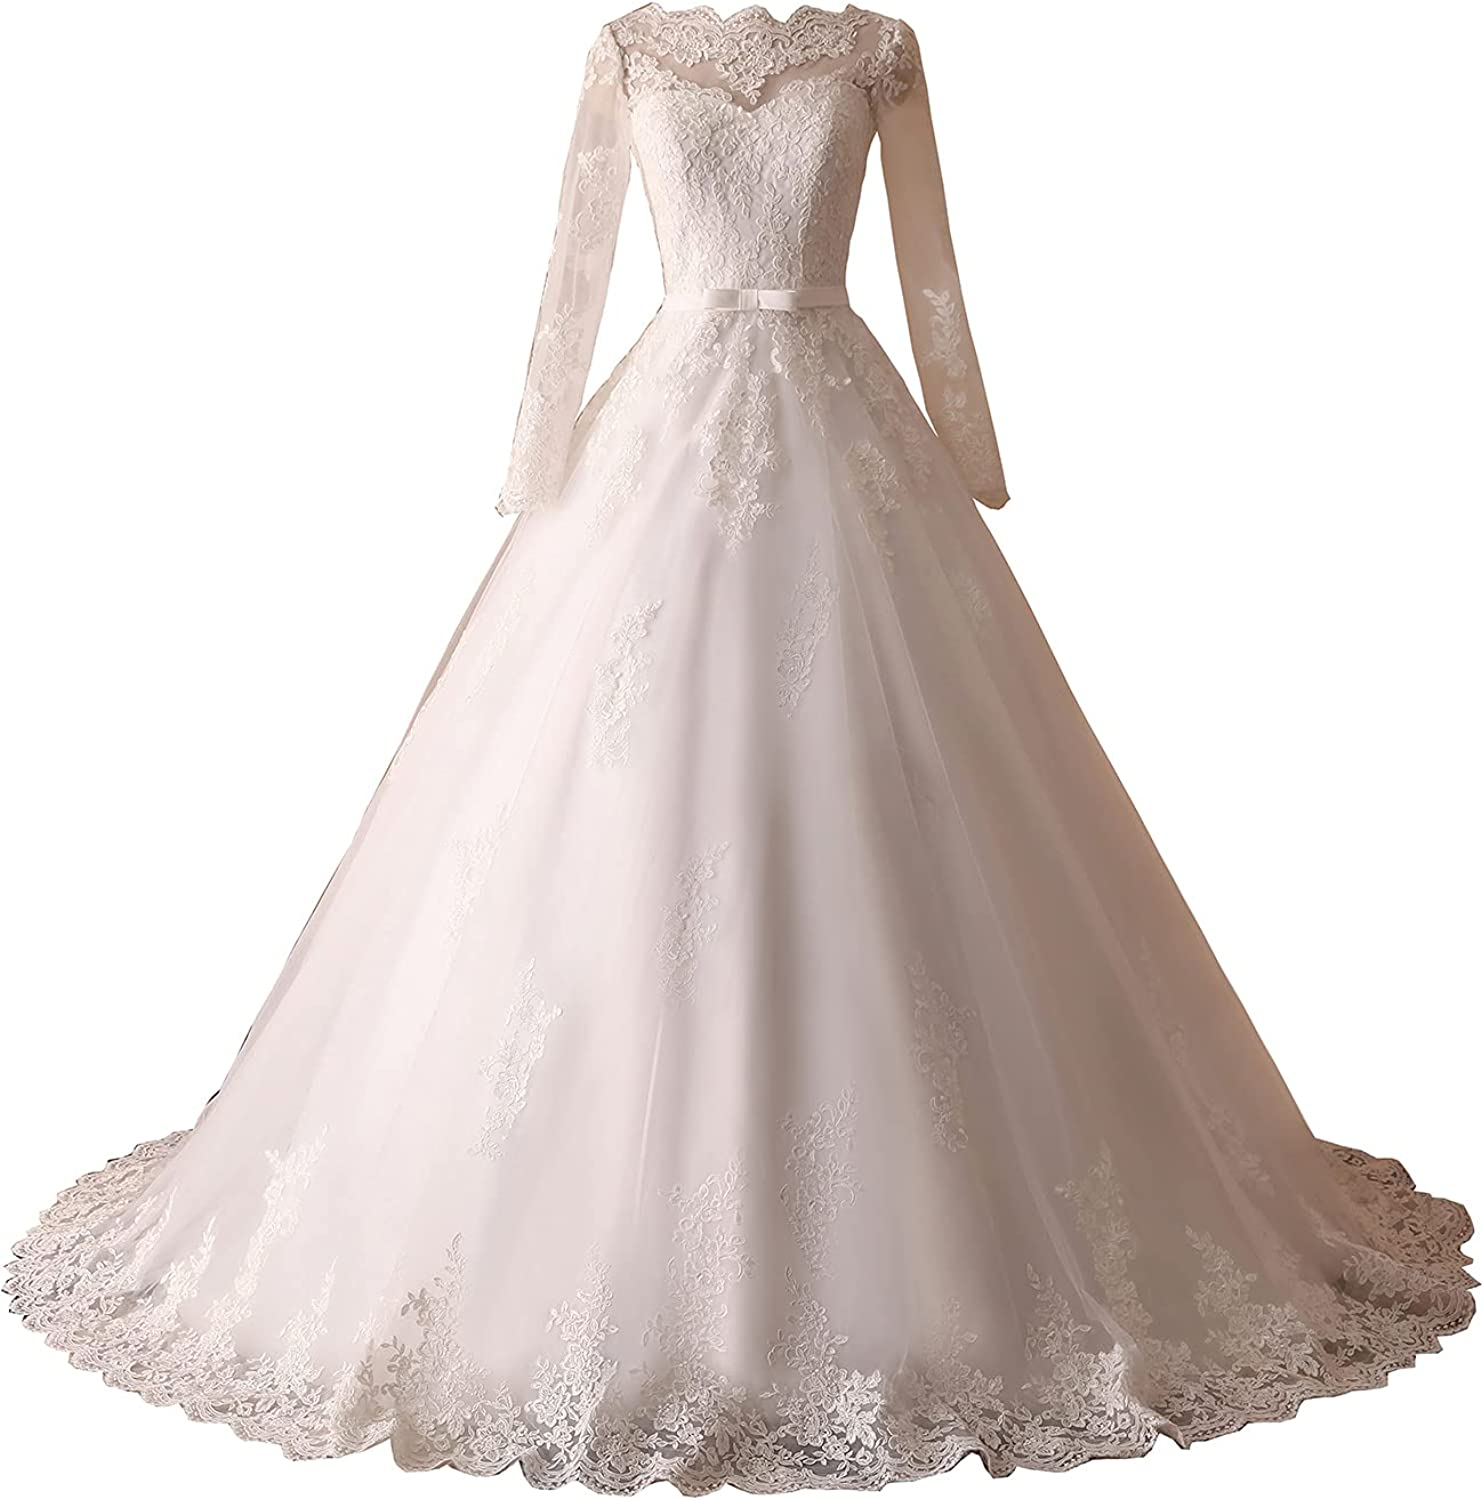 Women's Lace Mermaid Beach Wedding Dresses for Bride 2021 with Long Sleeves Bridal Gowns CX07